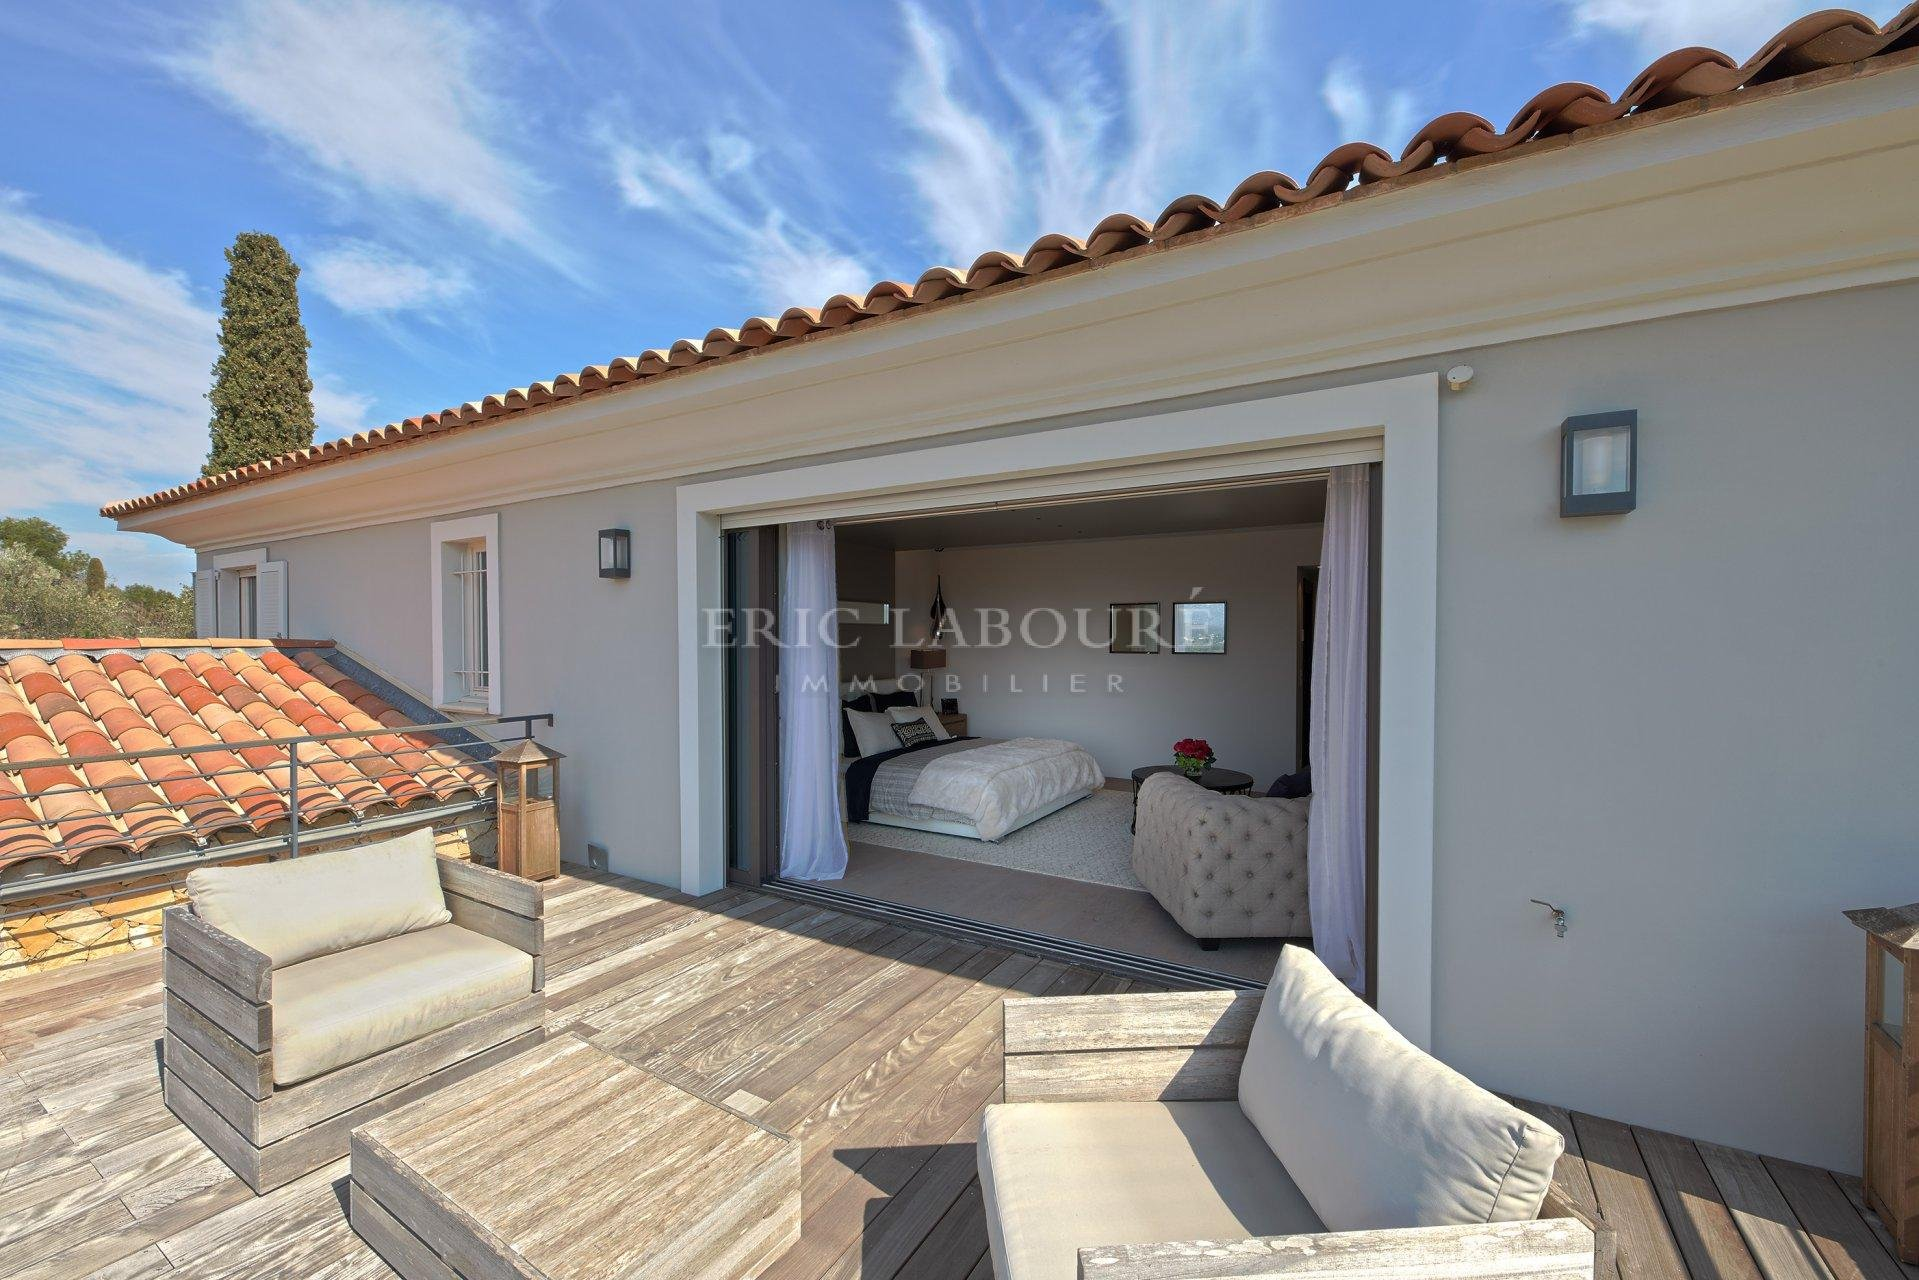 Sale luxurious authentic provencale villa - Beautiful view